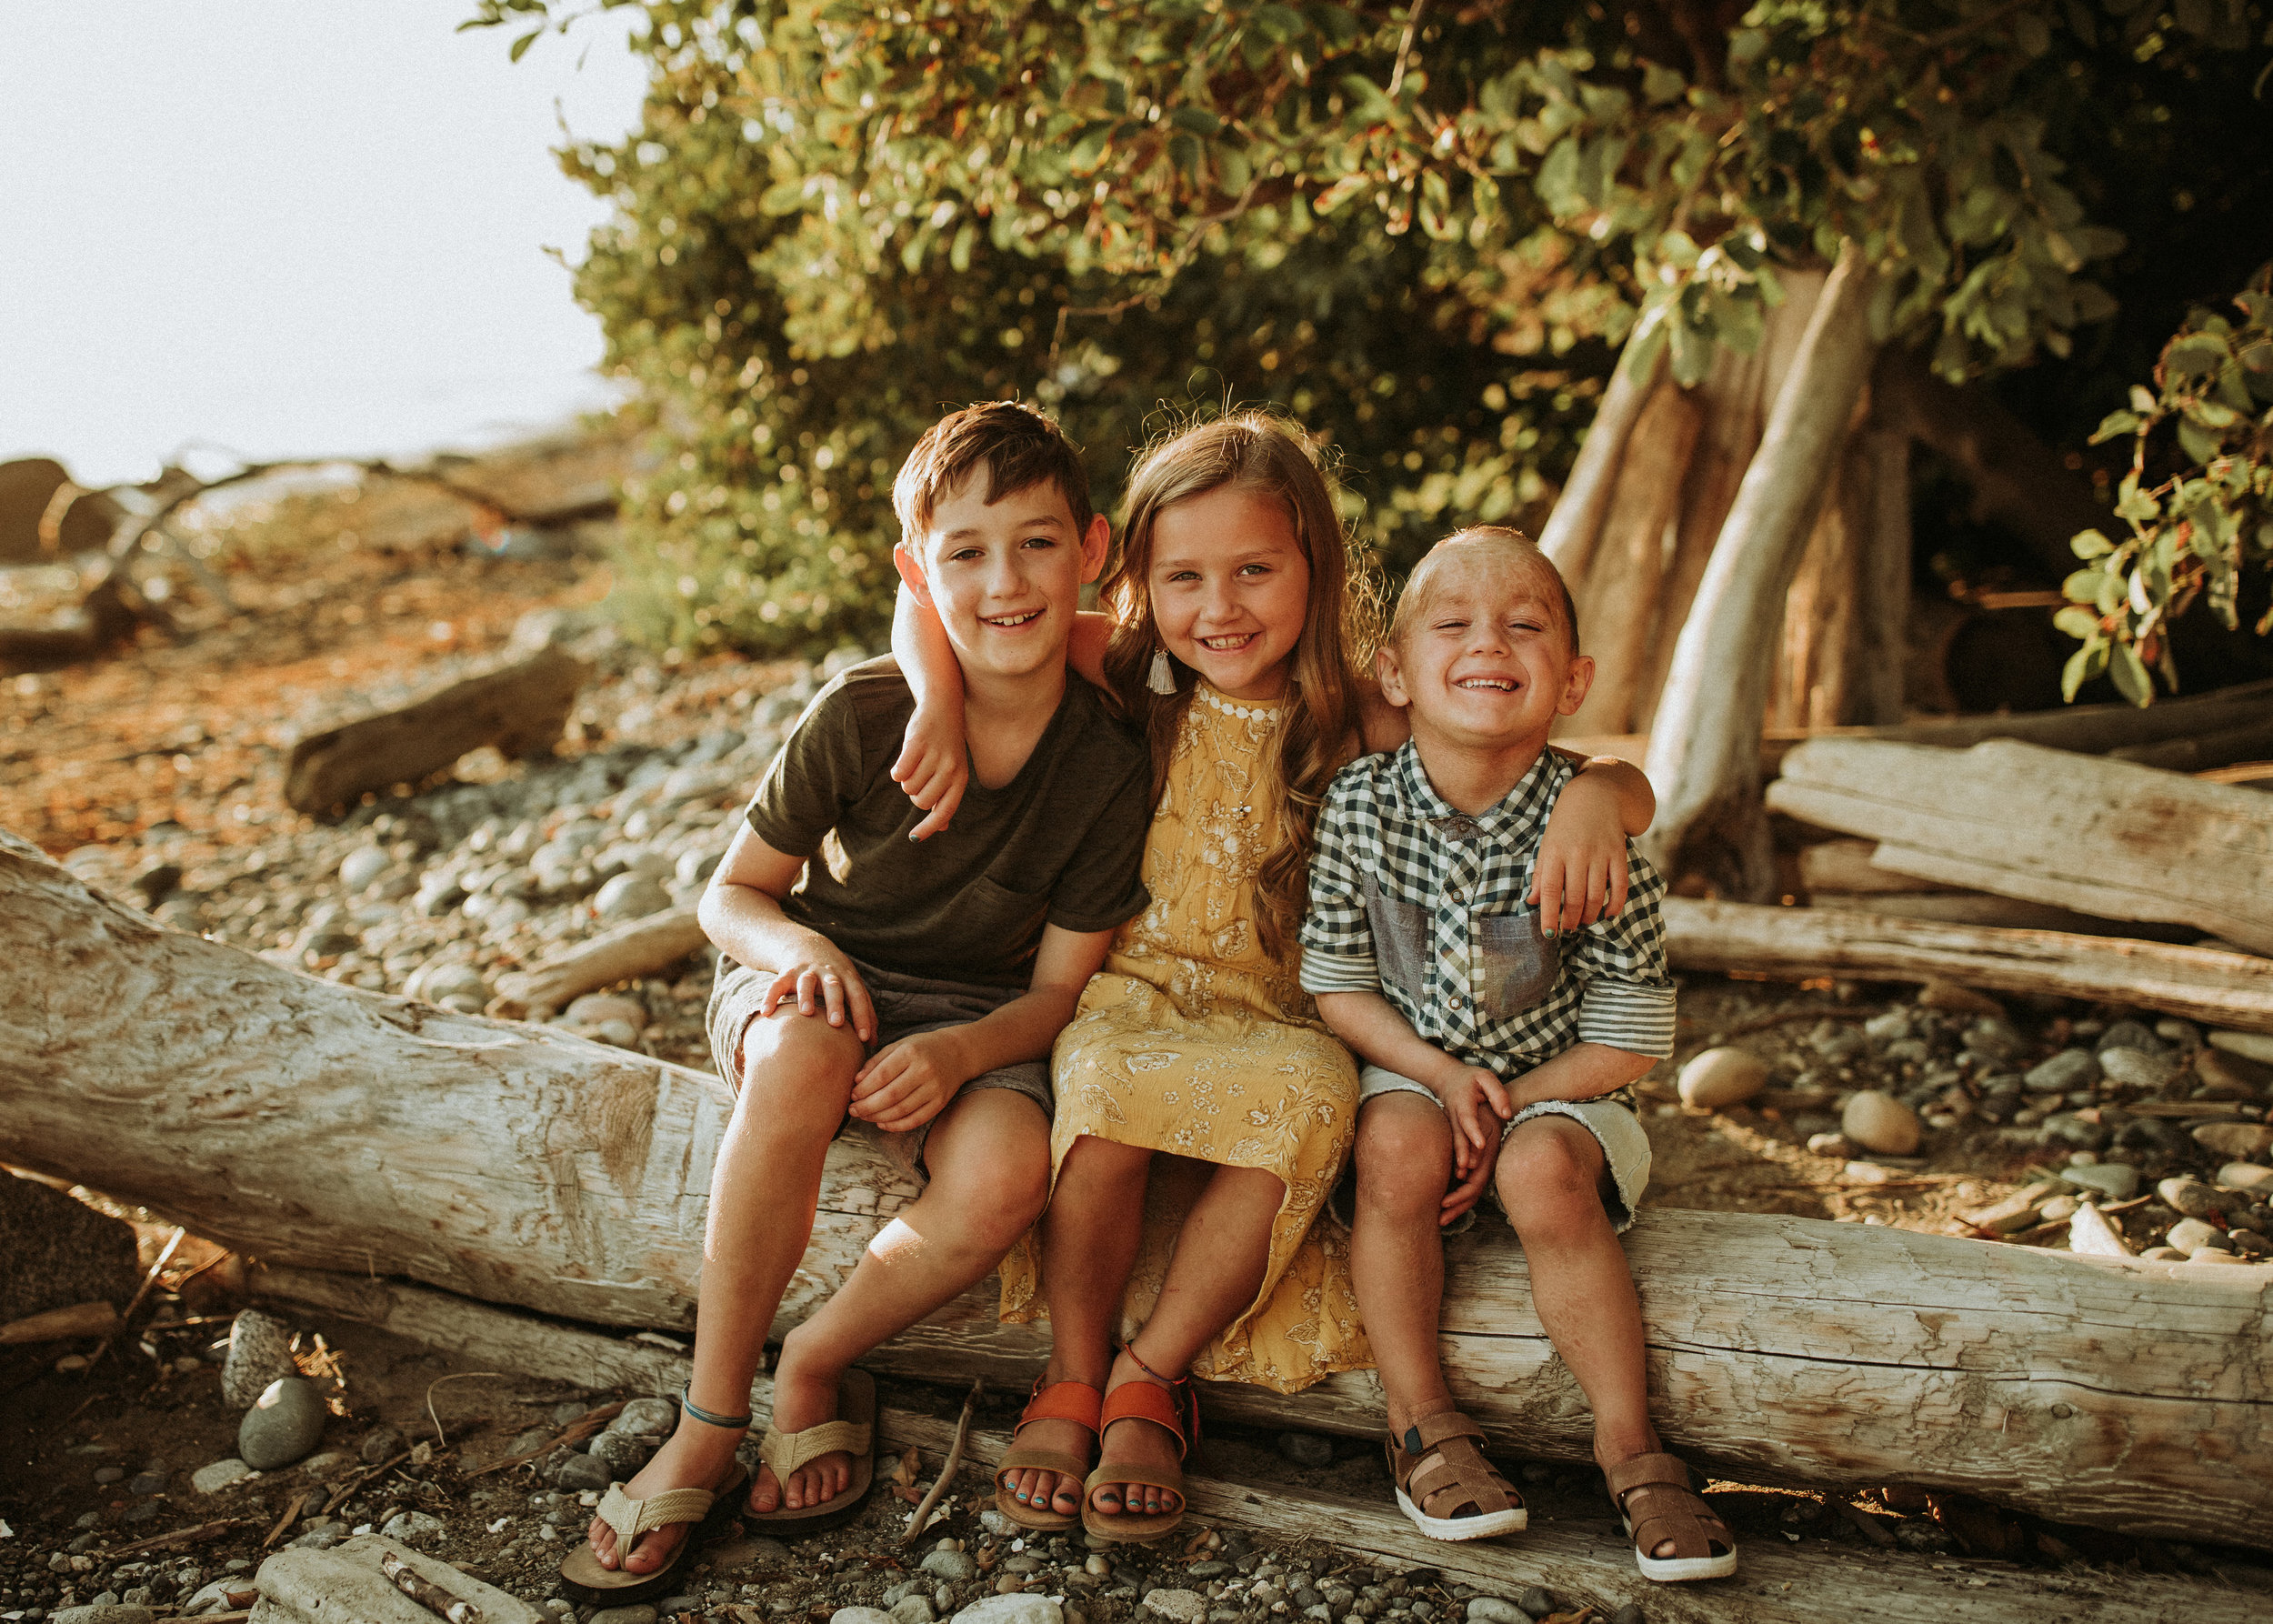 Family-Photographer-Bellingham-WA-Brianne-Bell-Photograpy-(Berry)-4.jpg